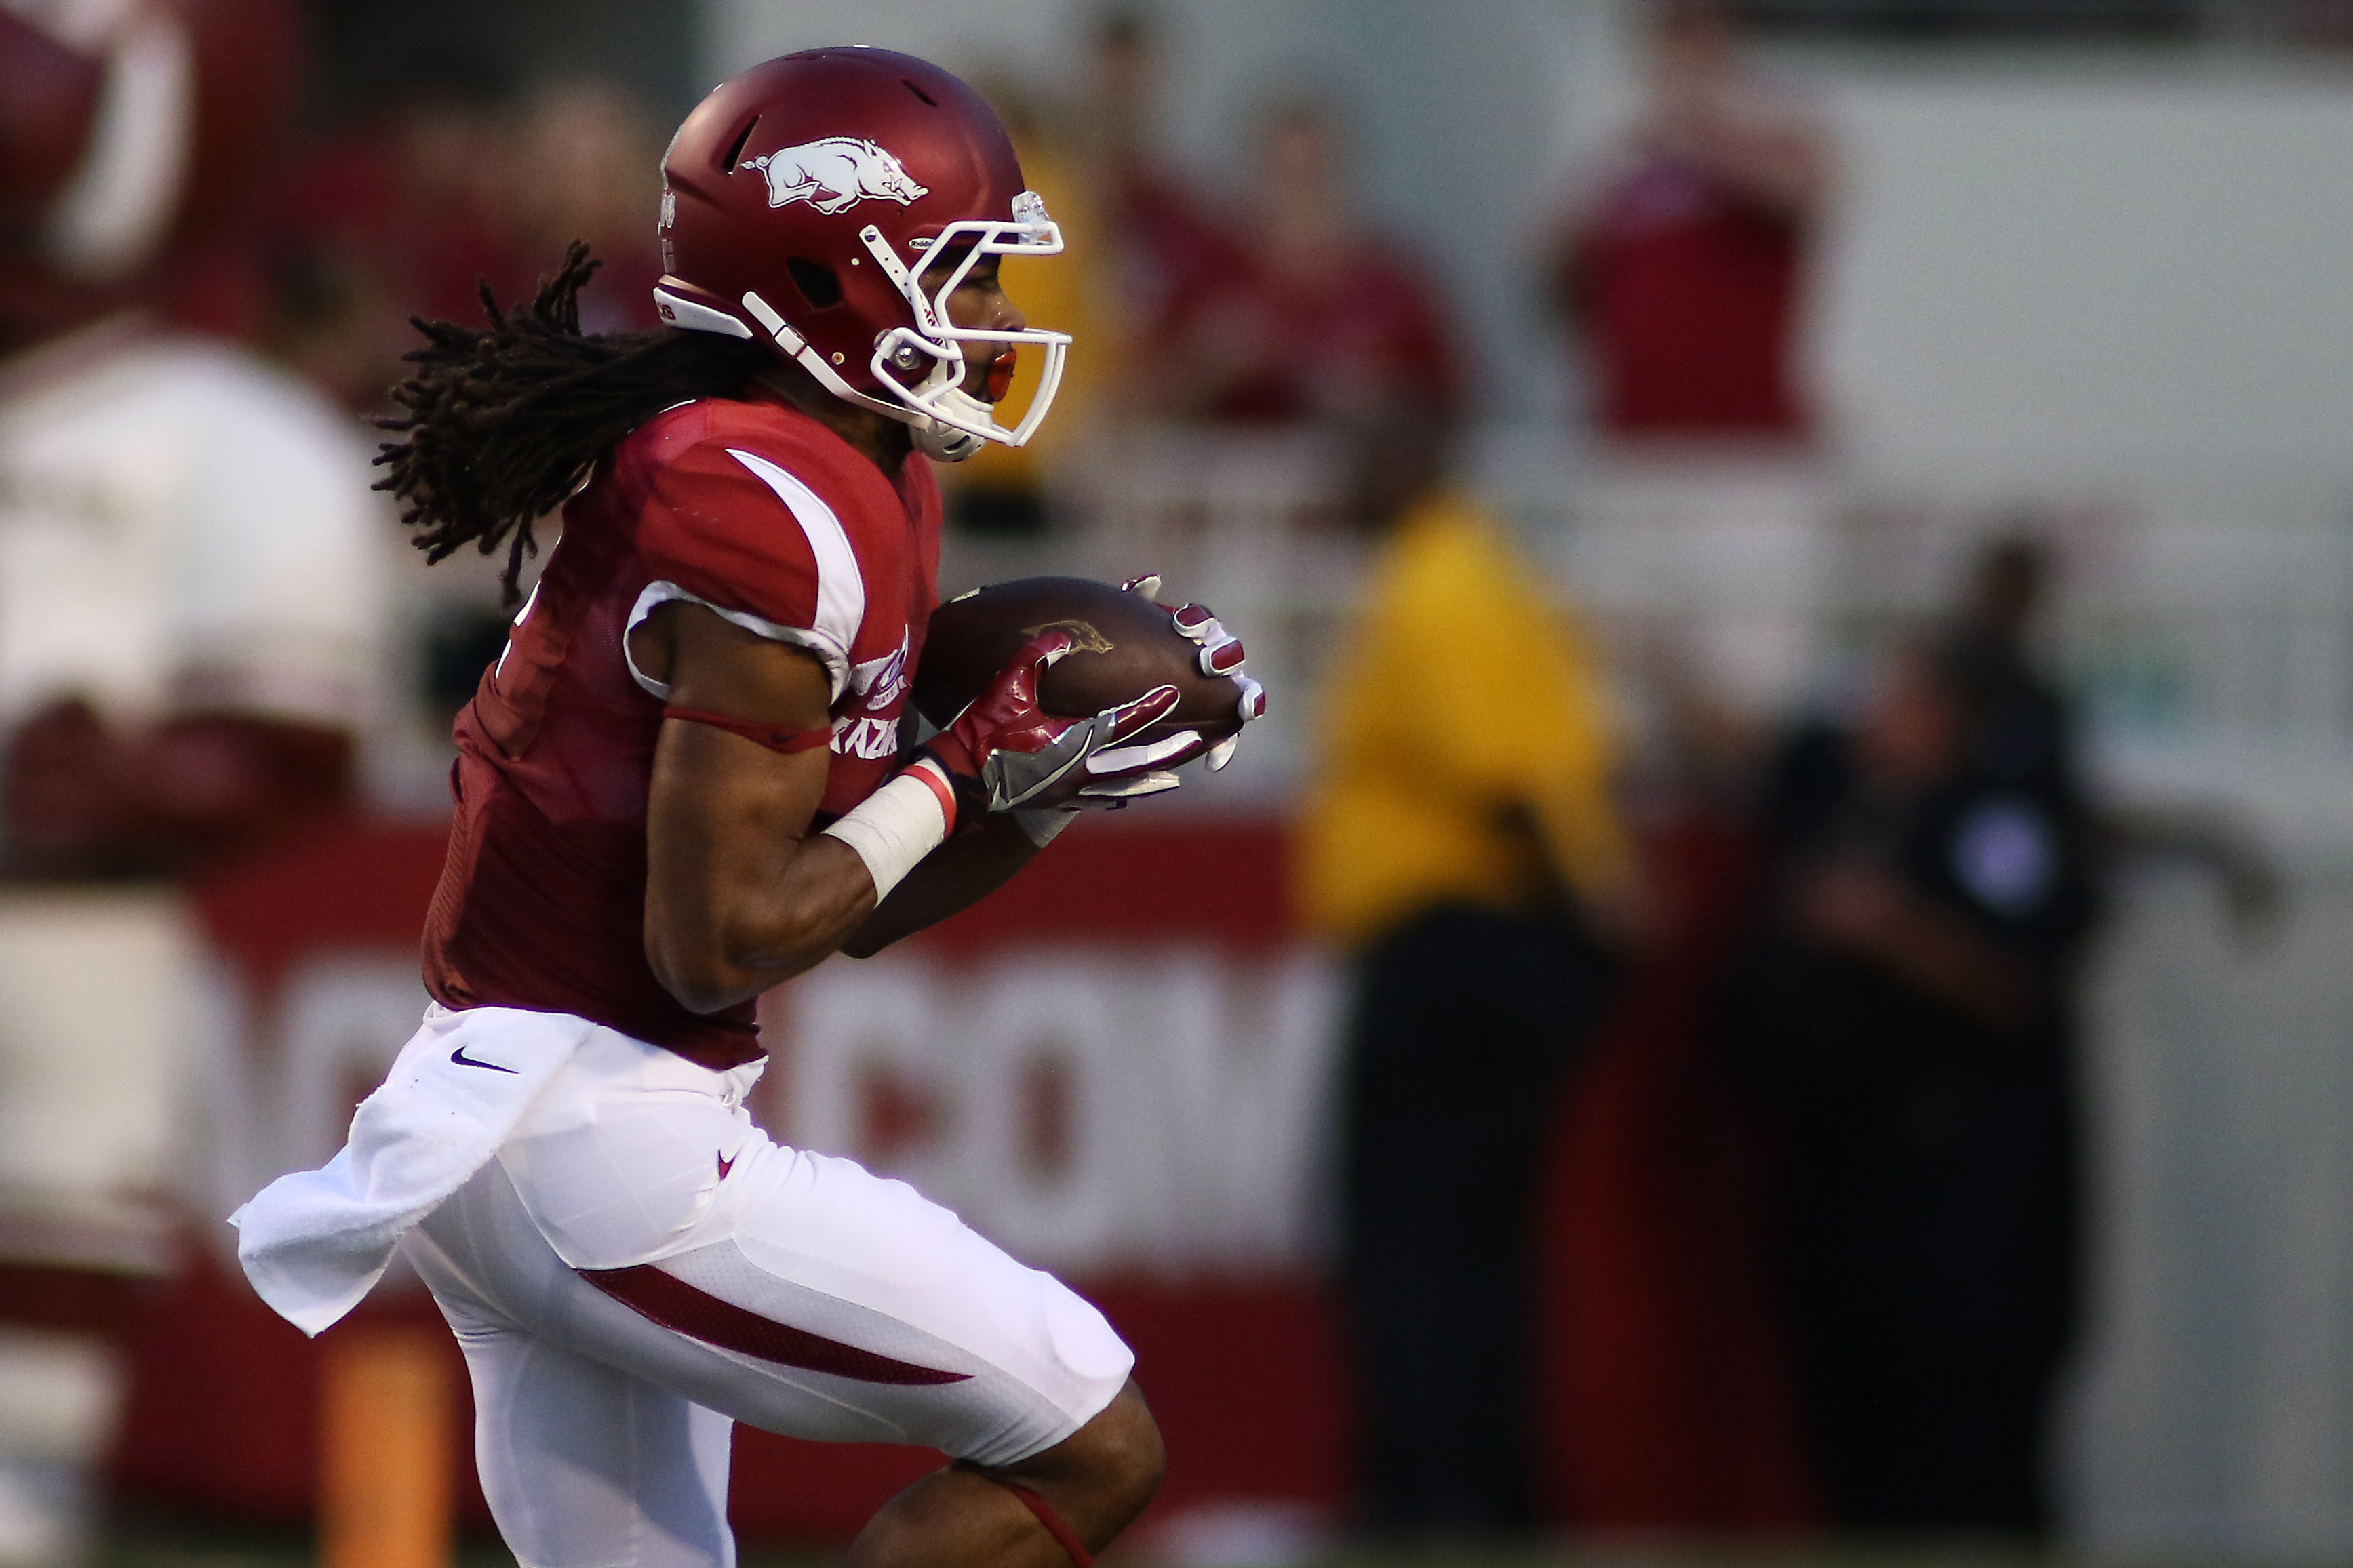 Arkansas' Keon Hatcher catches a pass for a long game yard during an NCAA college football game against Texas State on Saturday, Sept. 17, 2016, in Fayetteville, Ark. Arkansas won 42-3. (AP Photo/Samantha Baker)